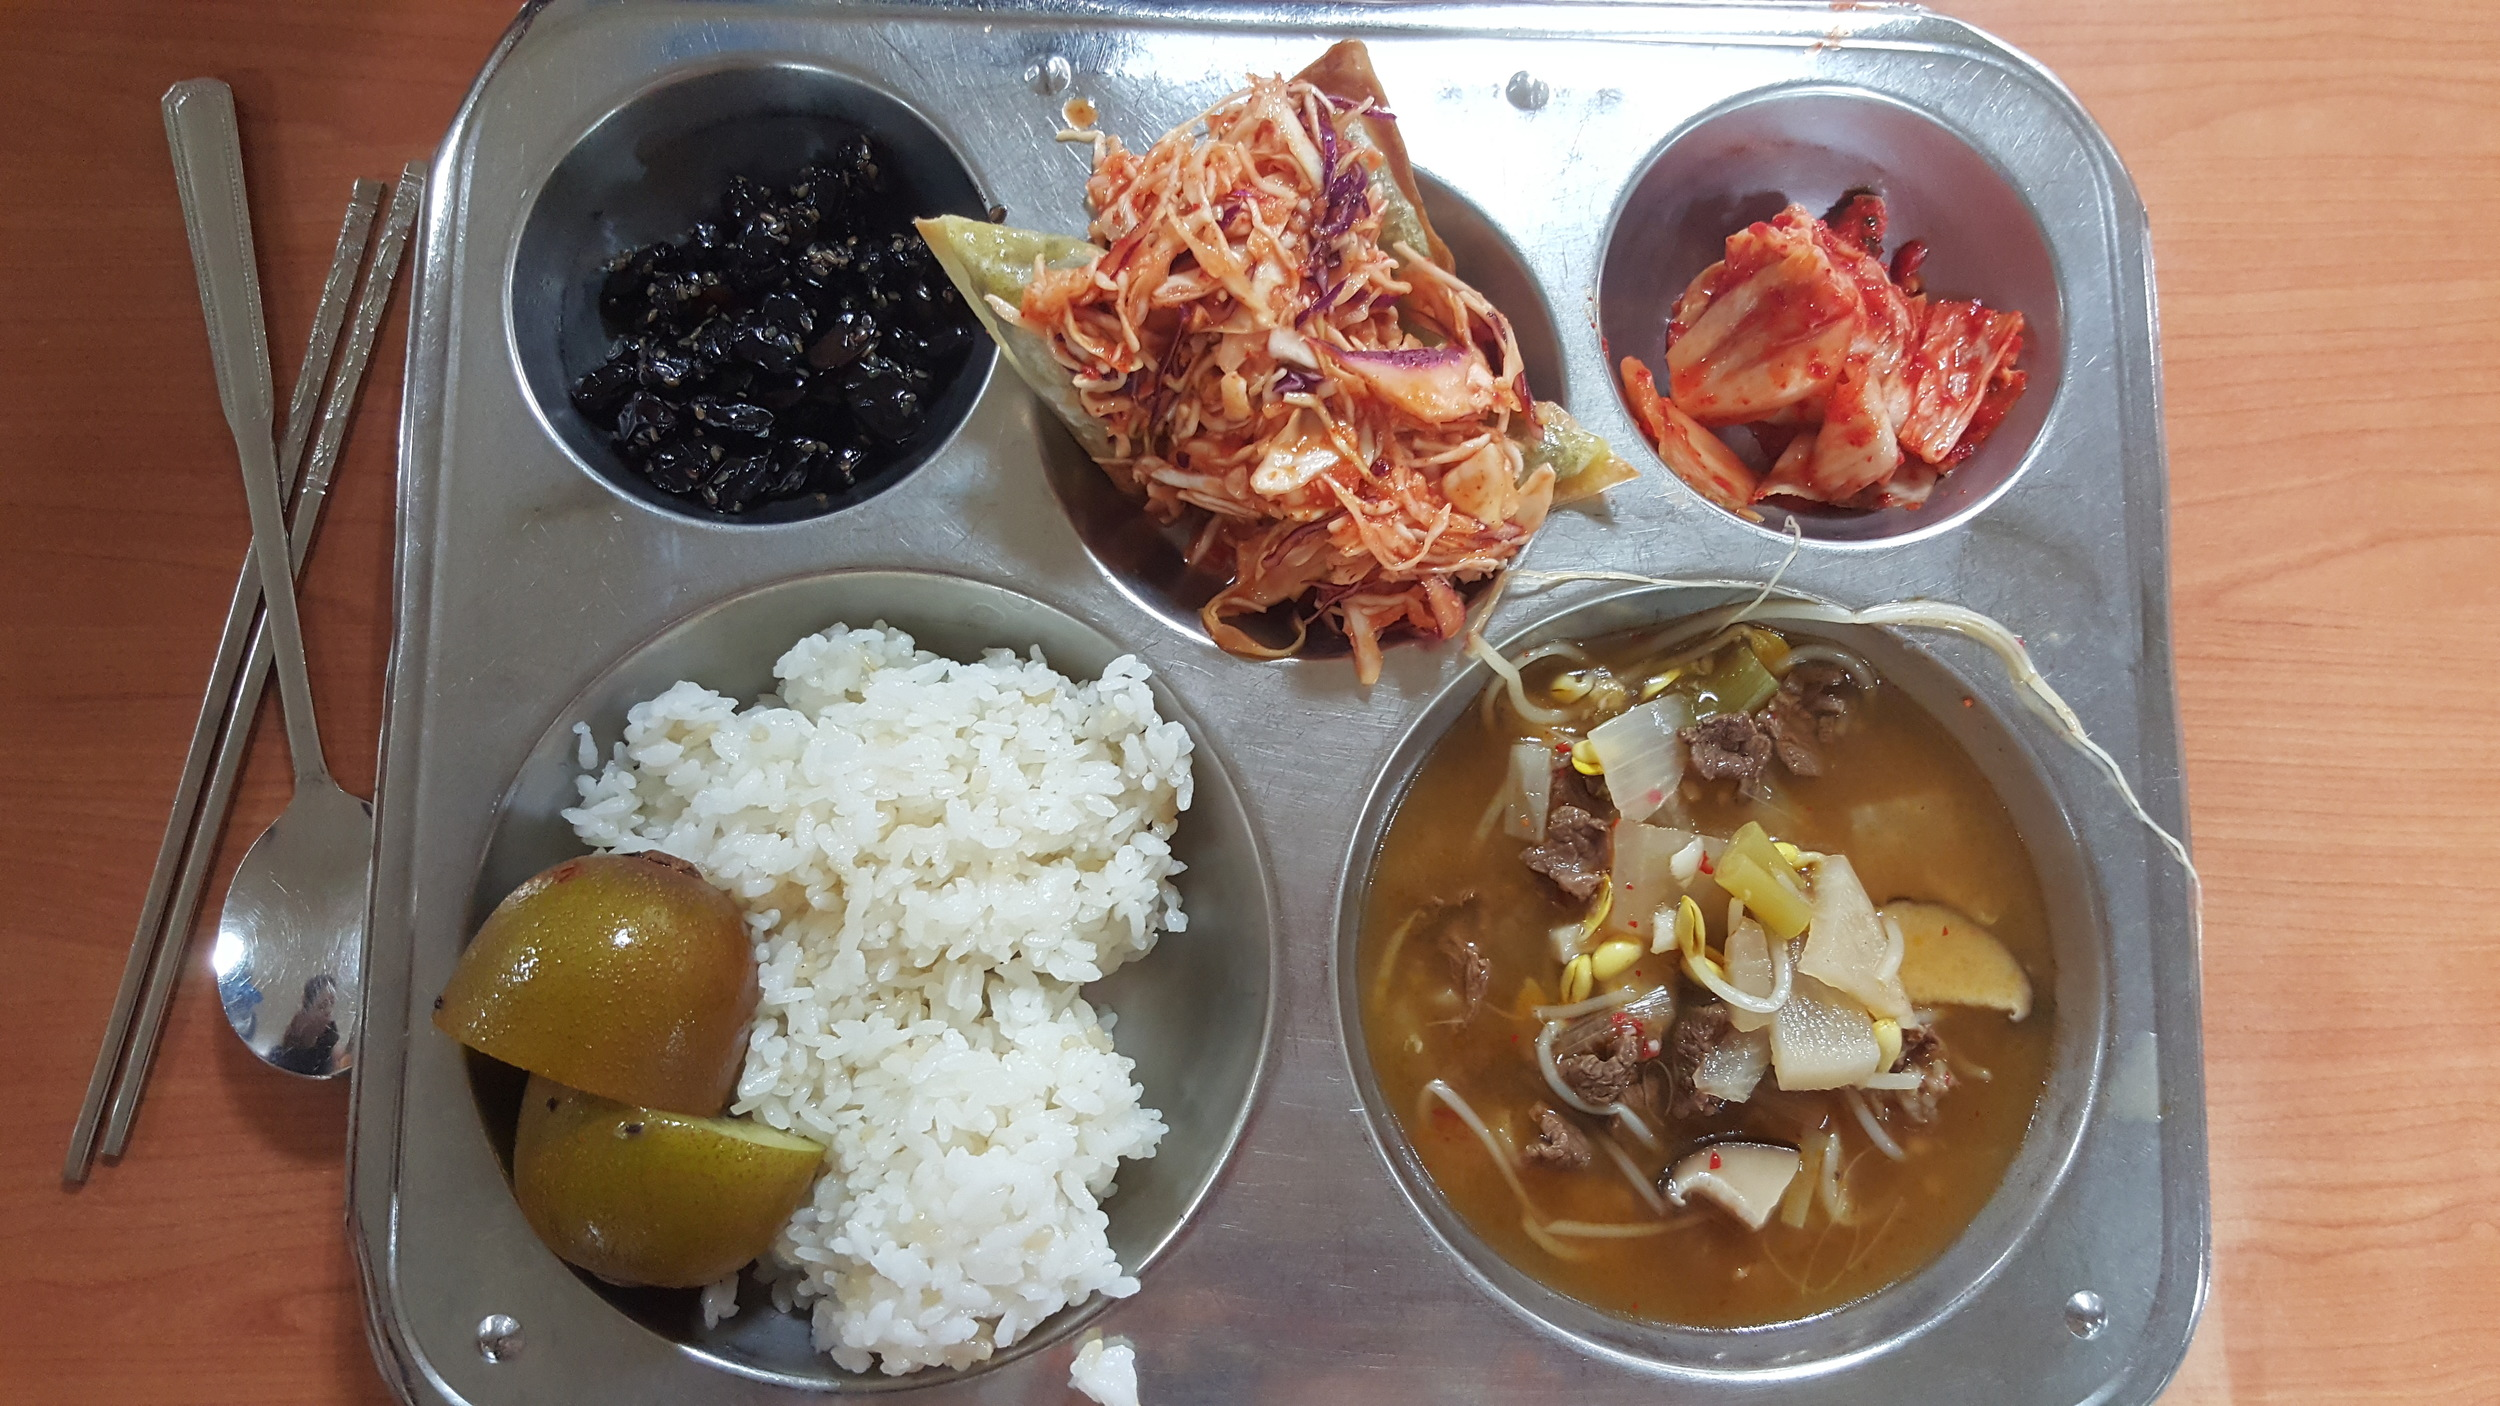 Dumplings with cabbage salad, soup with beef, rice, black beans, kimchi & kiwi